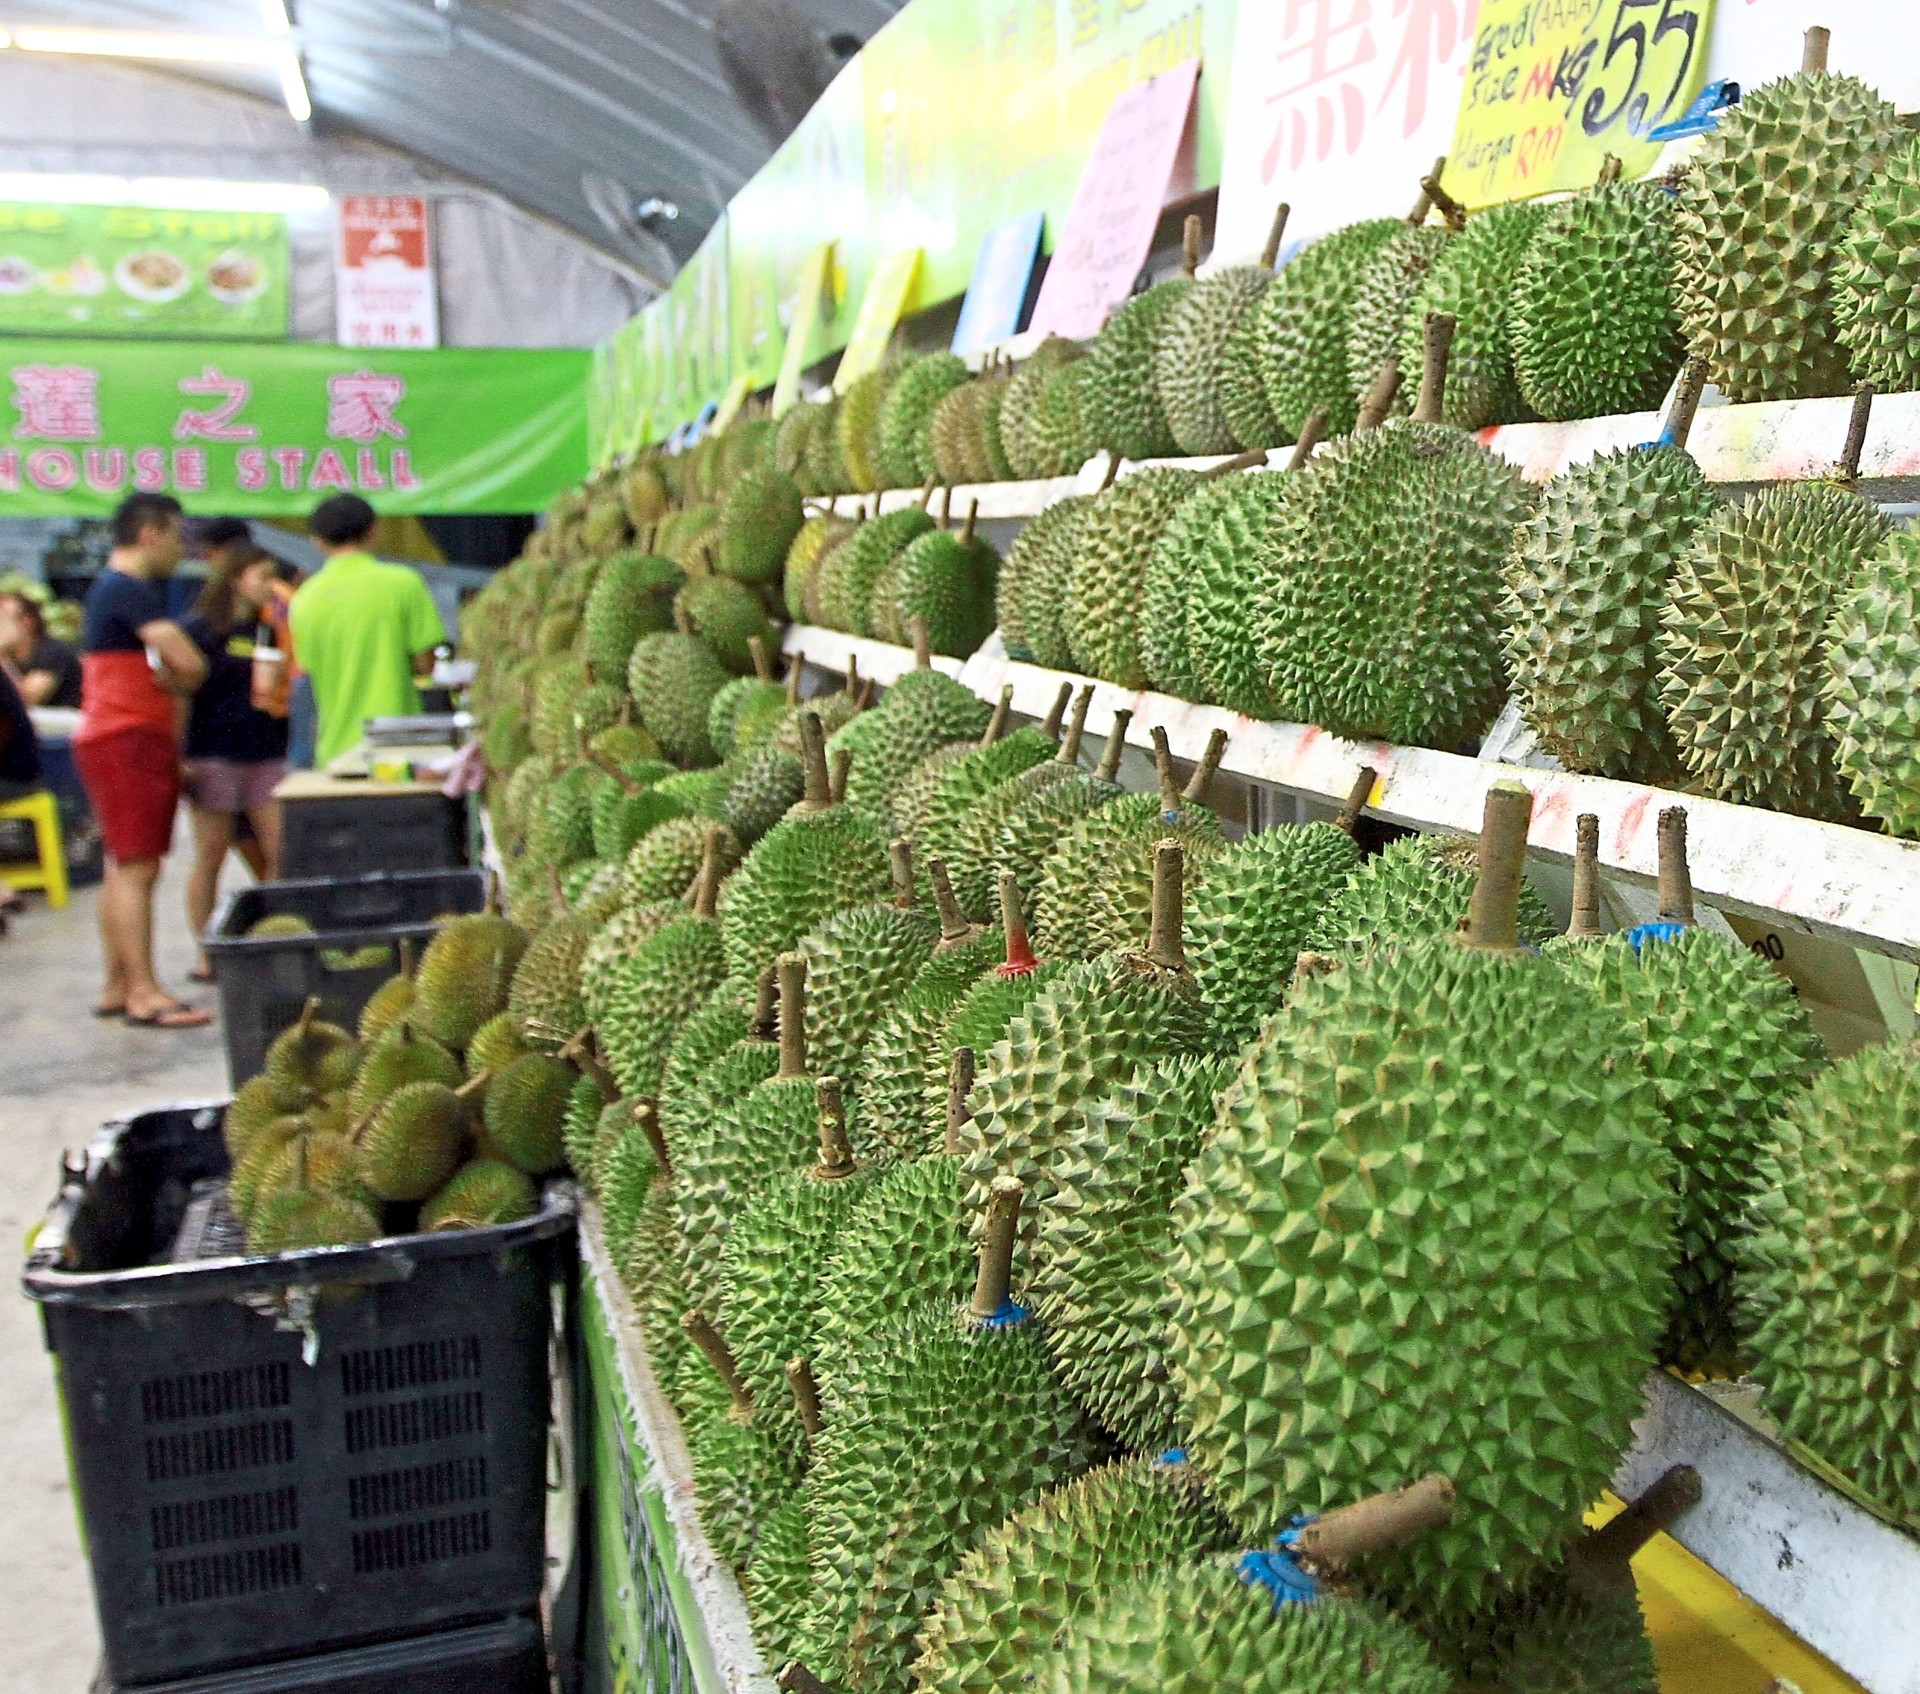 There are more than 10 different types of durians in the market but Musang King remains to be a popular choice.